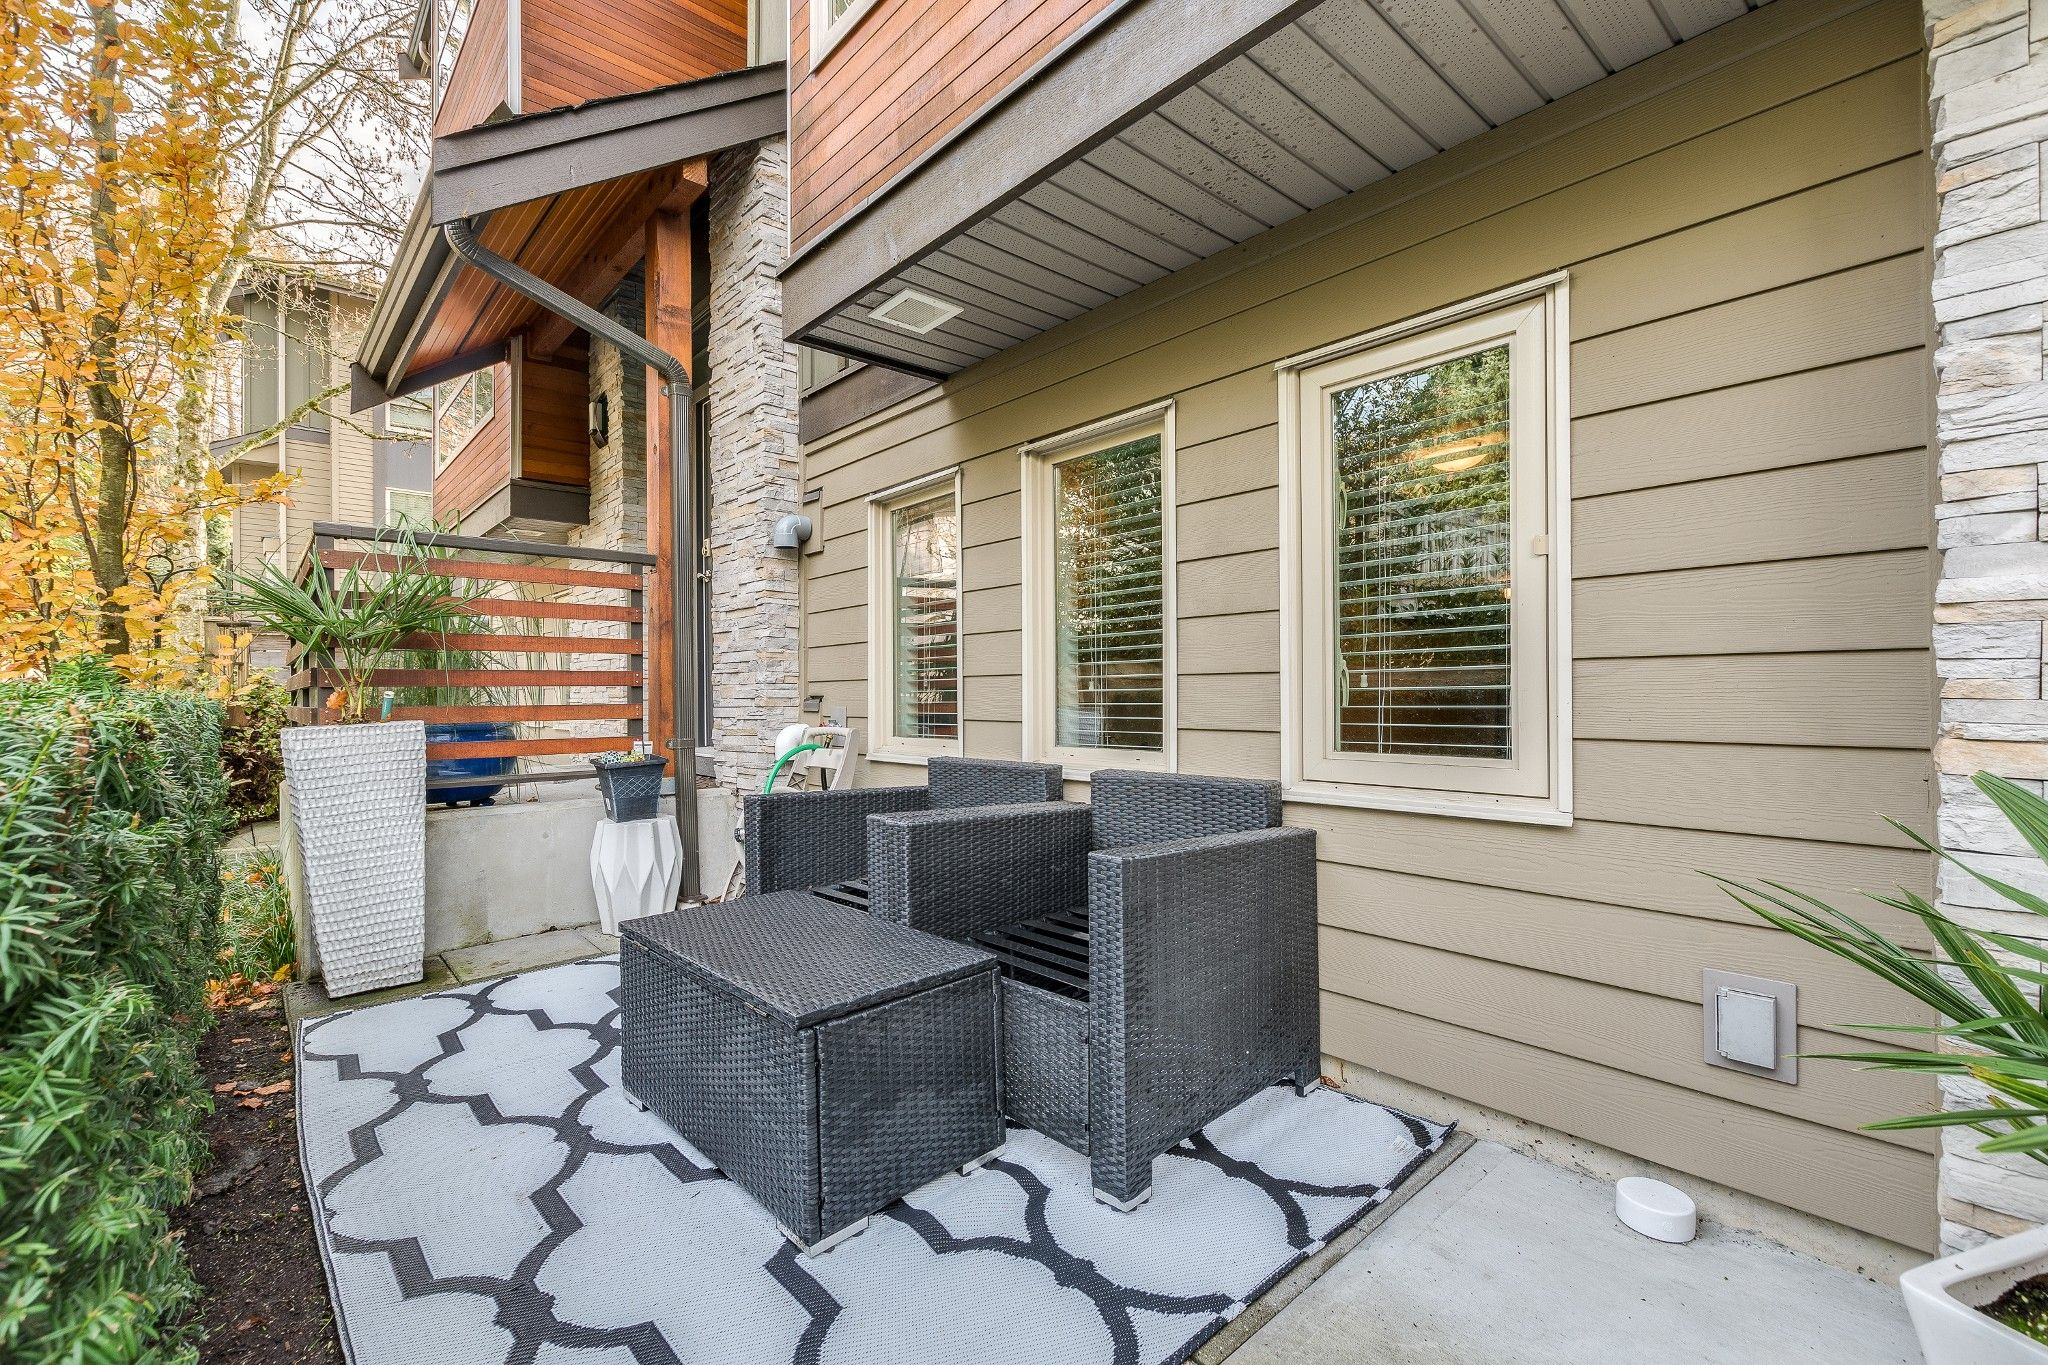 Photo 23: Photos: 24 897 Premier Street in : Lynnmour Townhouse for sale (North Vancouver)